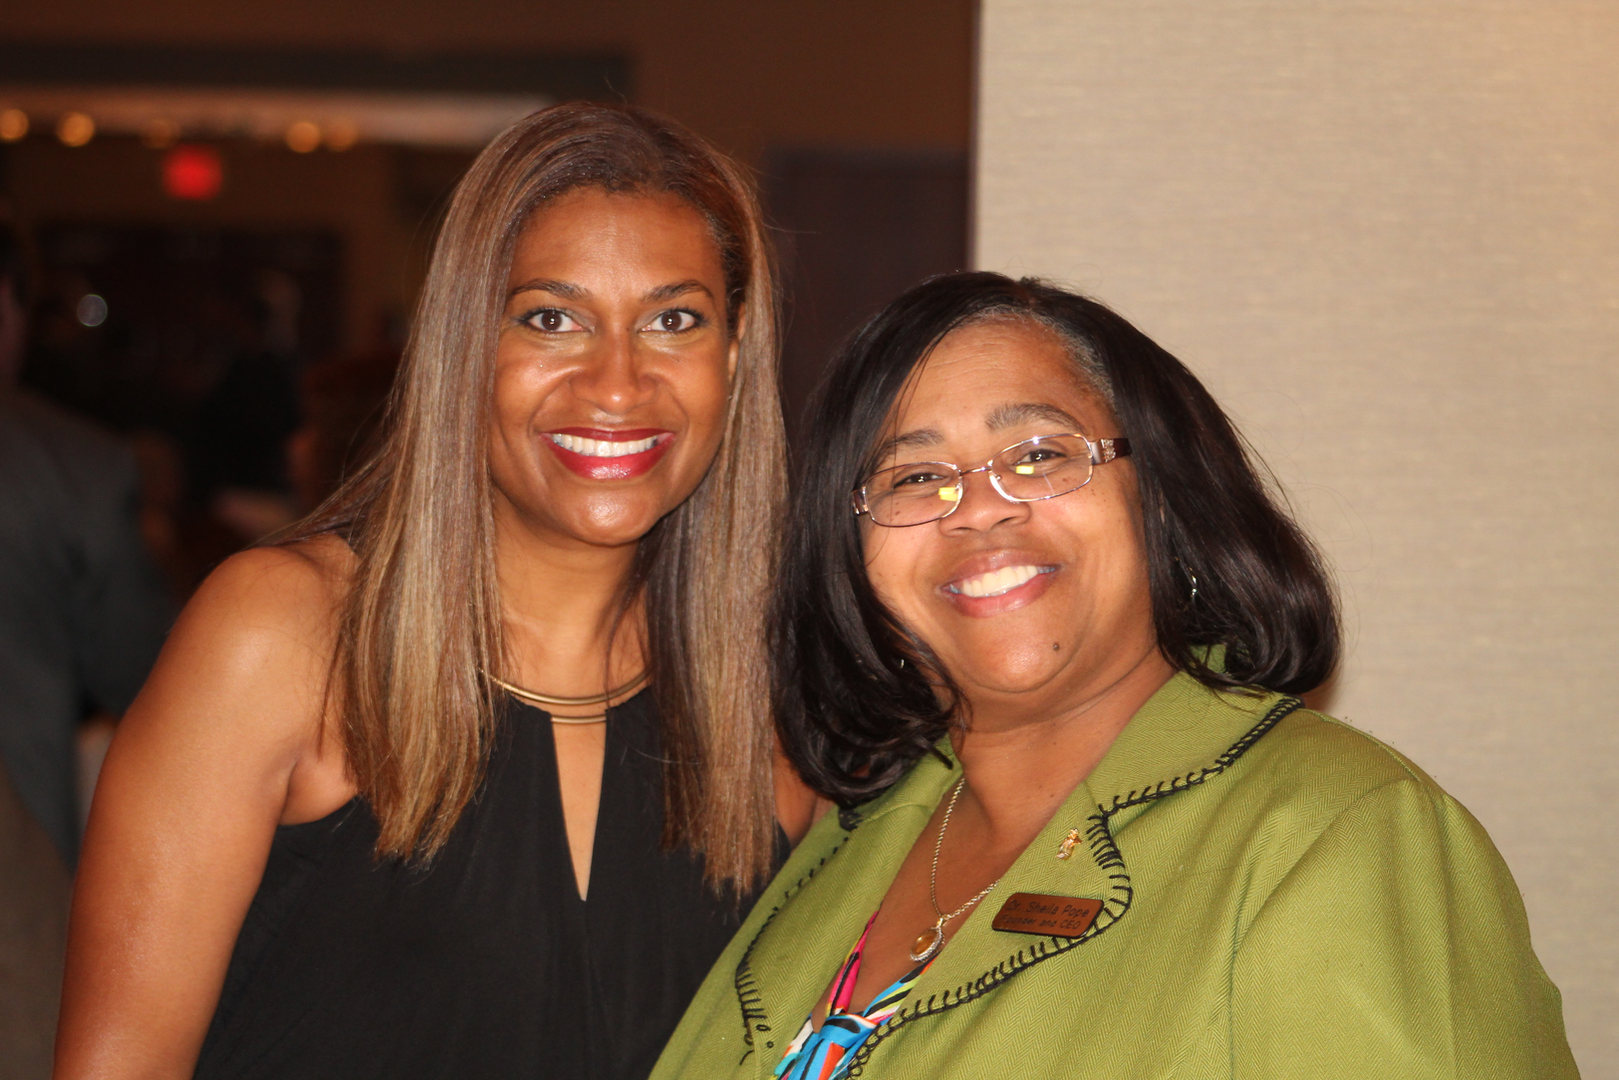 Dr. Pope with City Councilmember Dr. Let